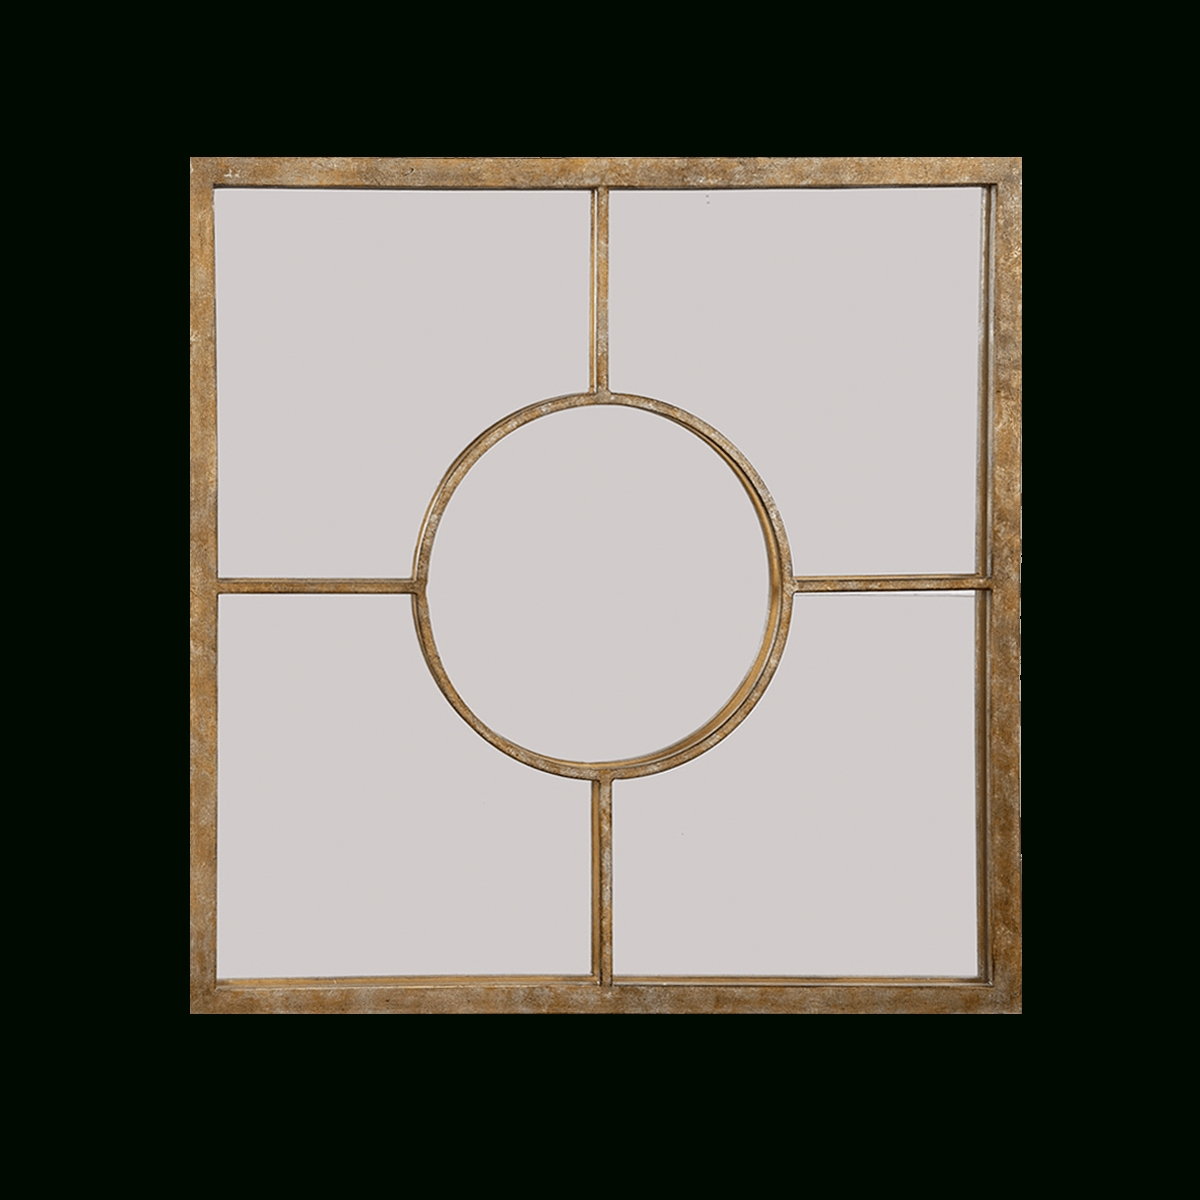 James Mottled Gold Square Decorative Wall Mirrorold World Design Pertaining To Square Gold Mirror (Photo 15 of 20)